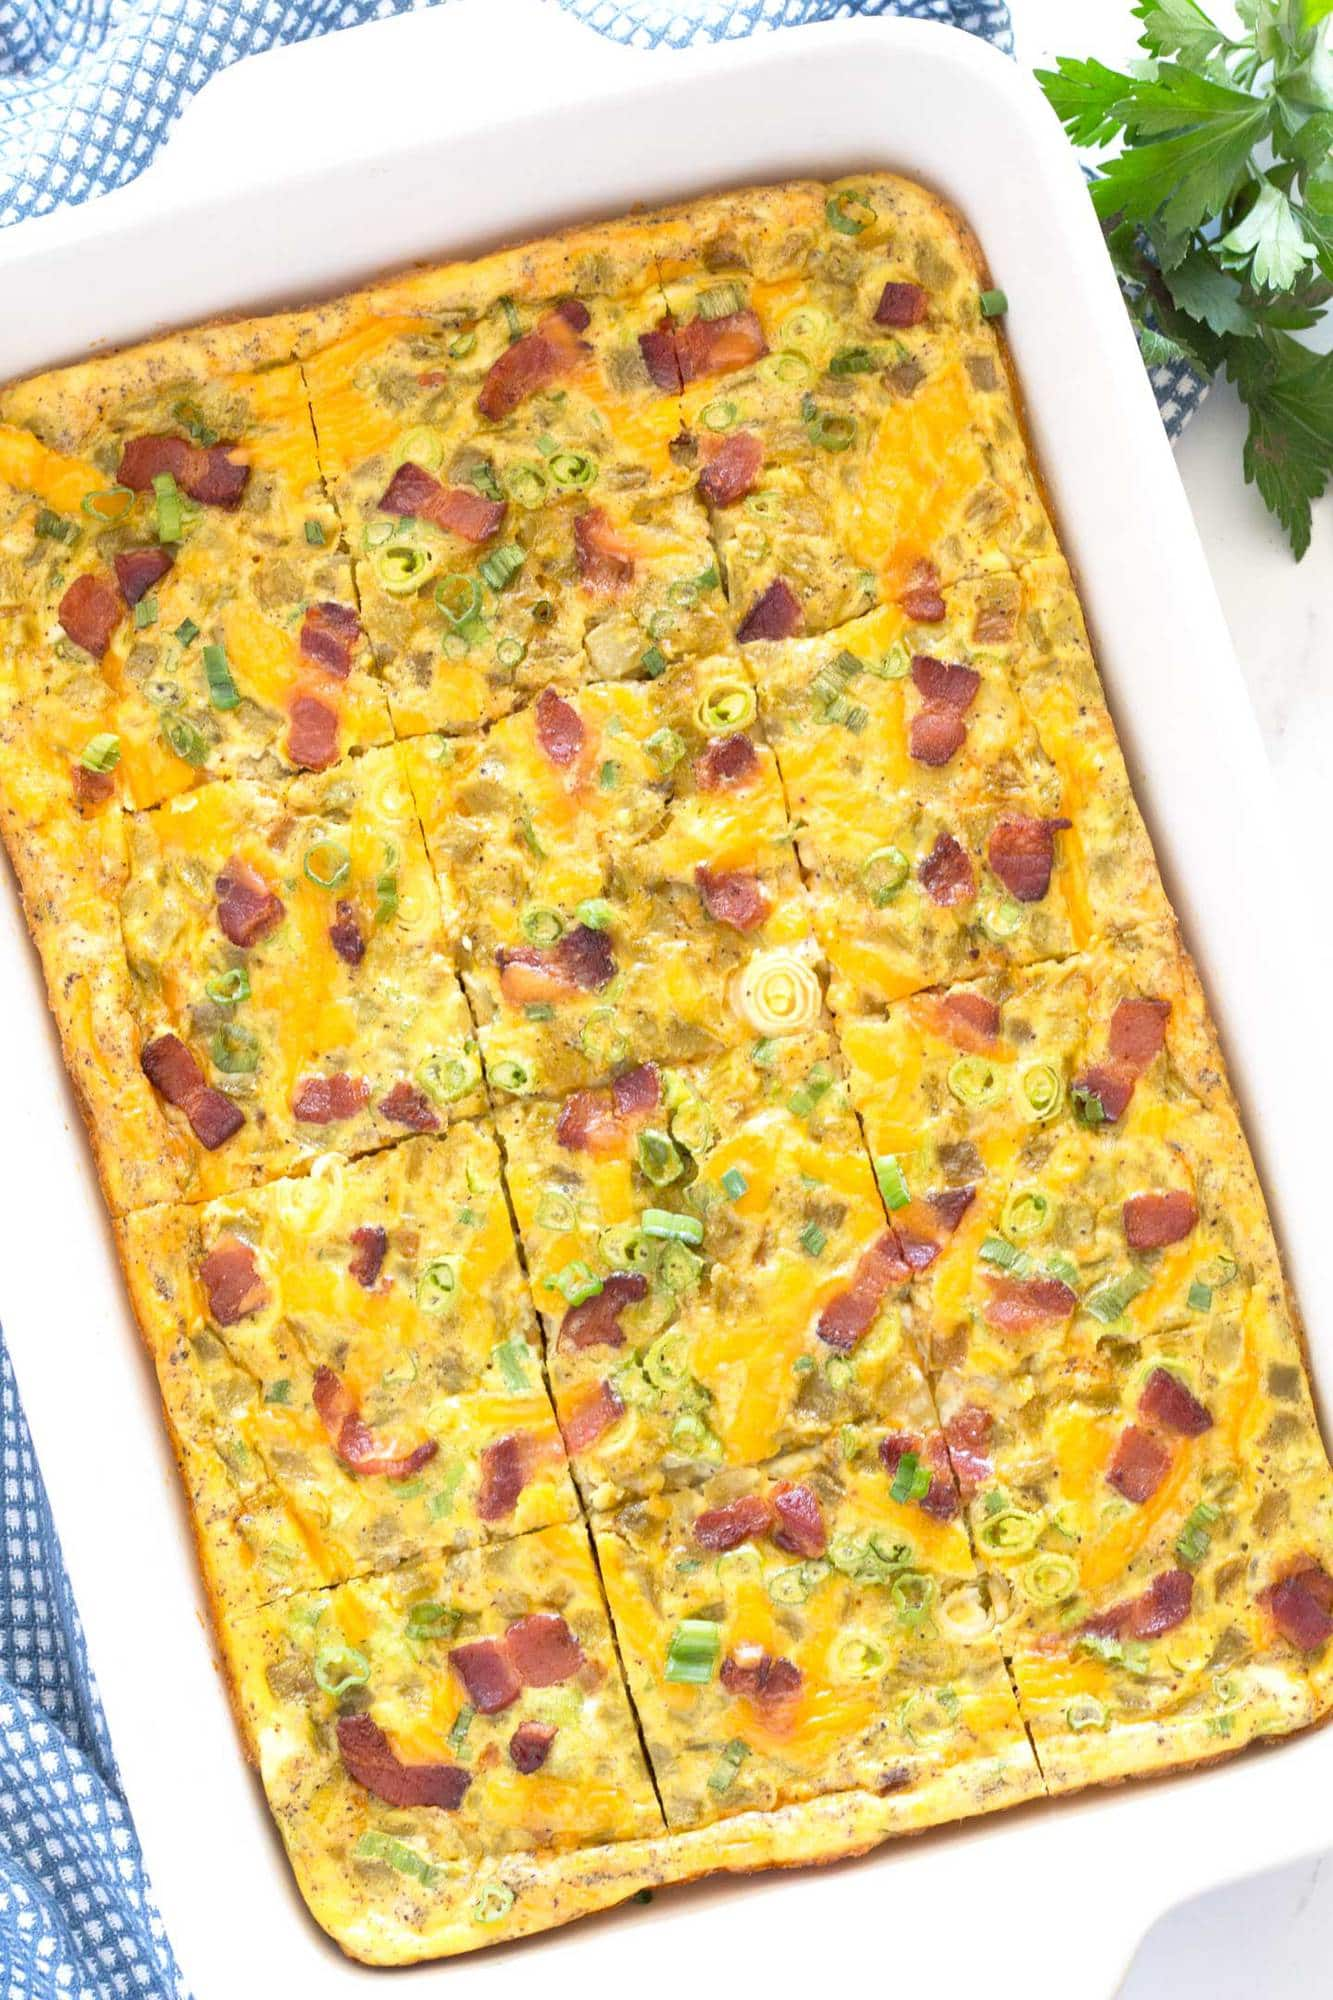 Pieces of breakfast casserole with bacon and green chilis in the baking pan.